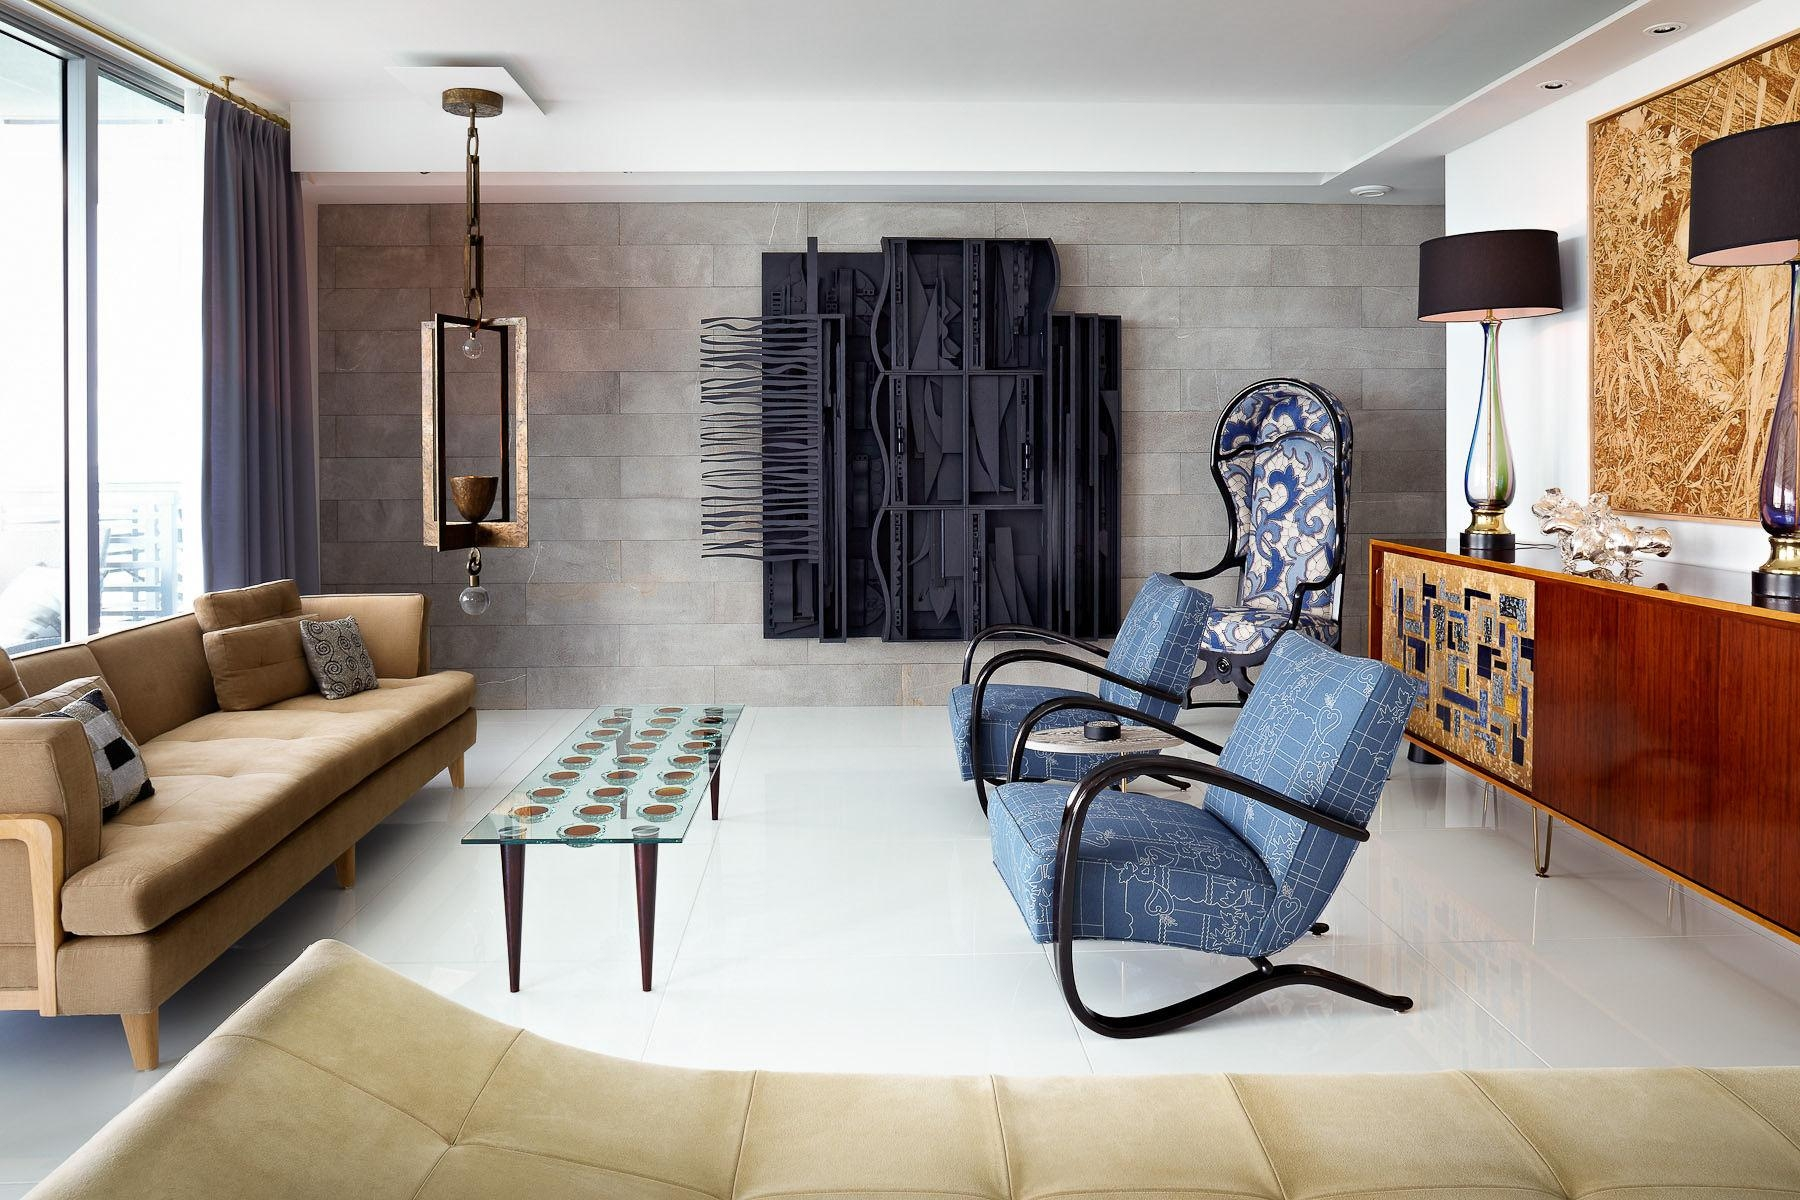 Excellent Mens Apartment Art And Wall Art For Men Living Room With With Regard To Wall Art For Guys (View 20 of 20)